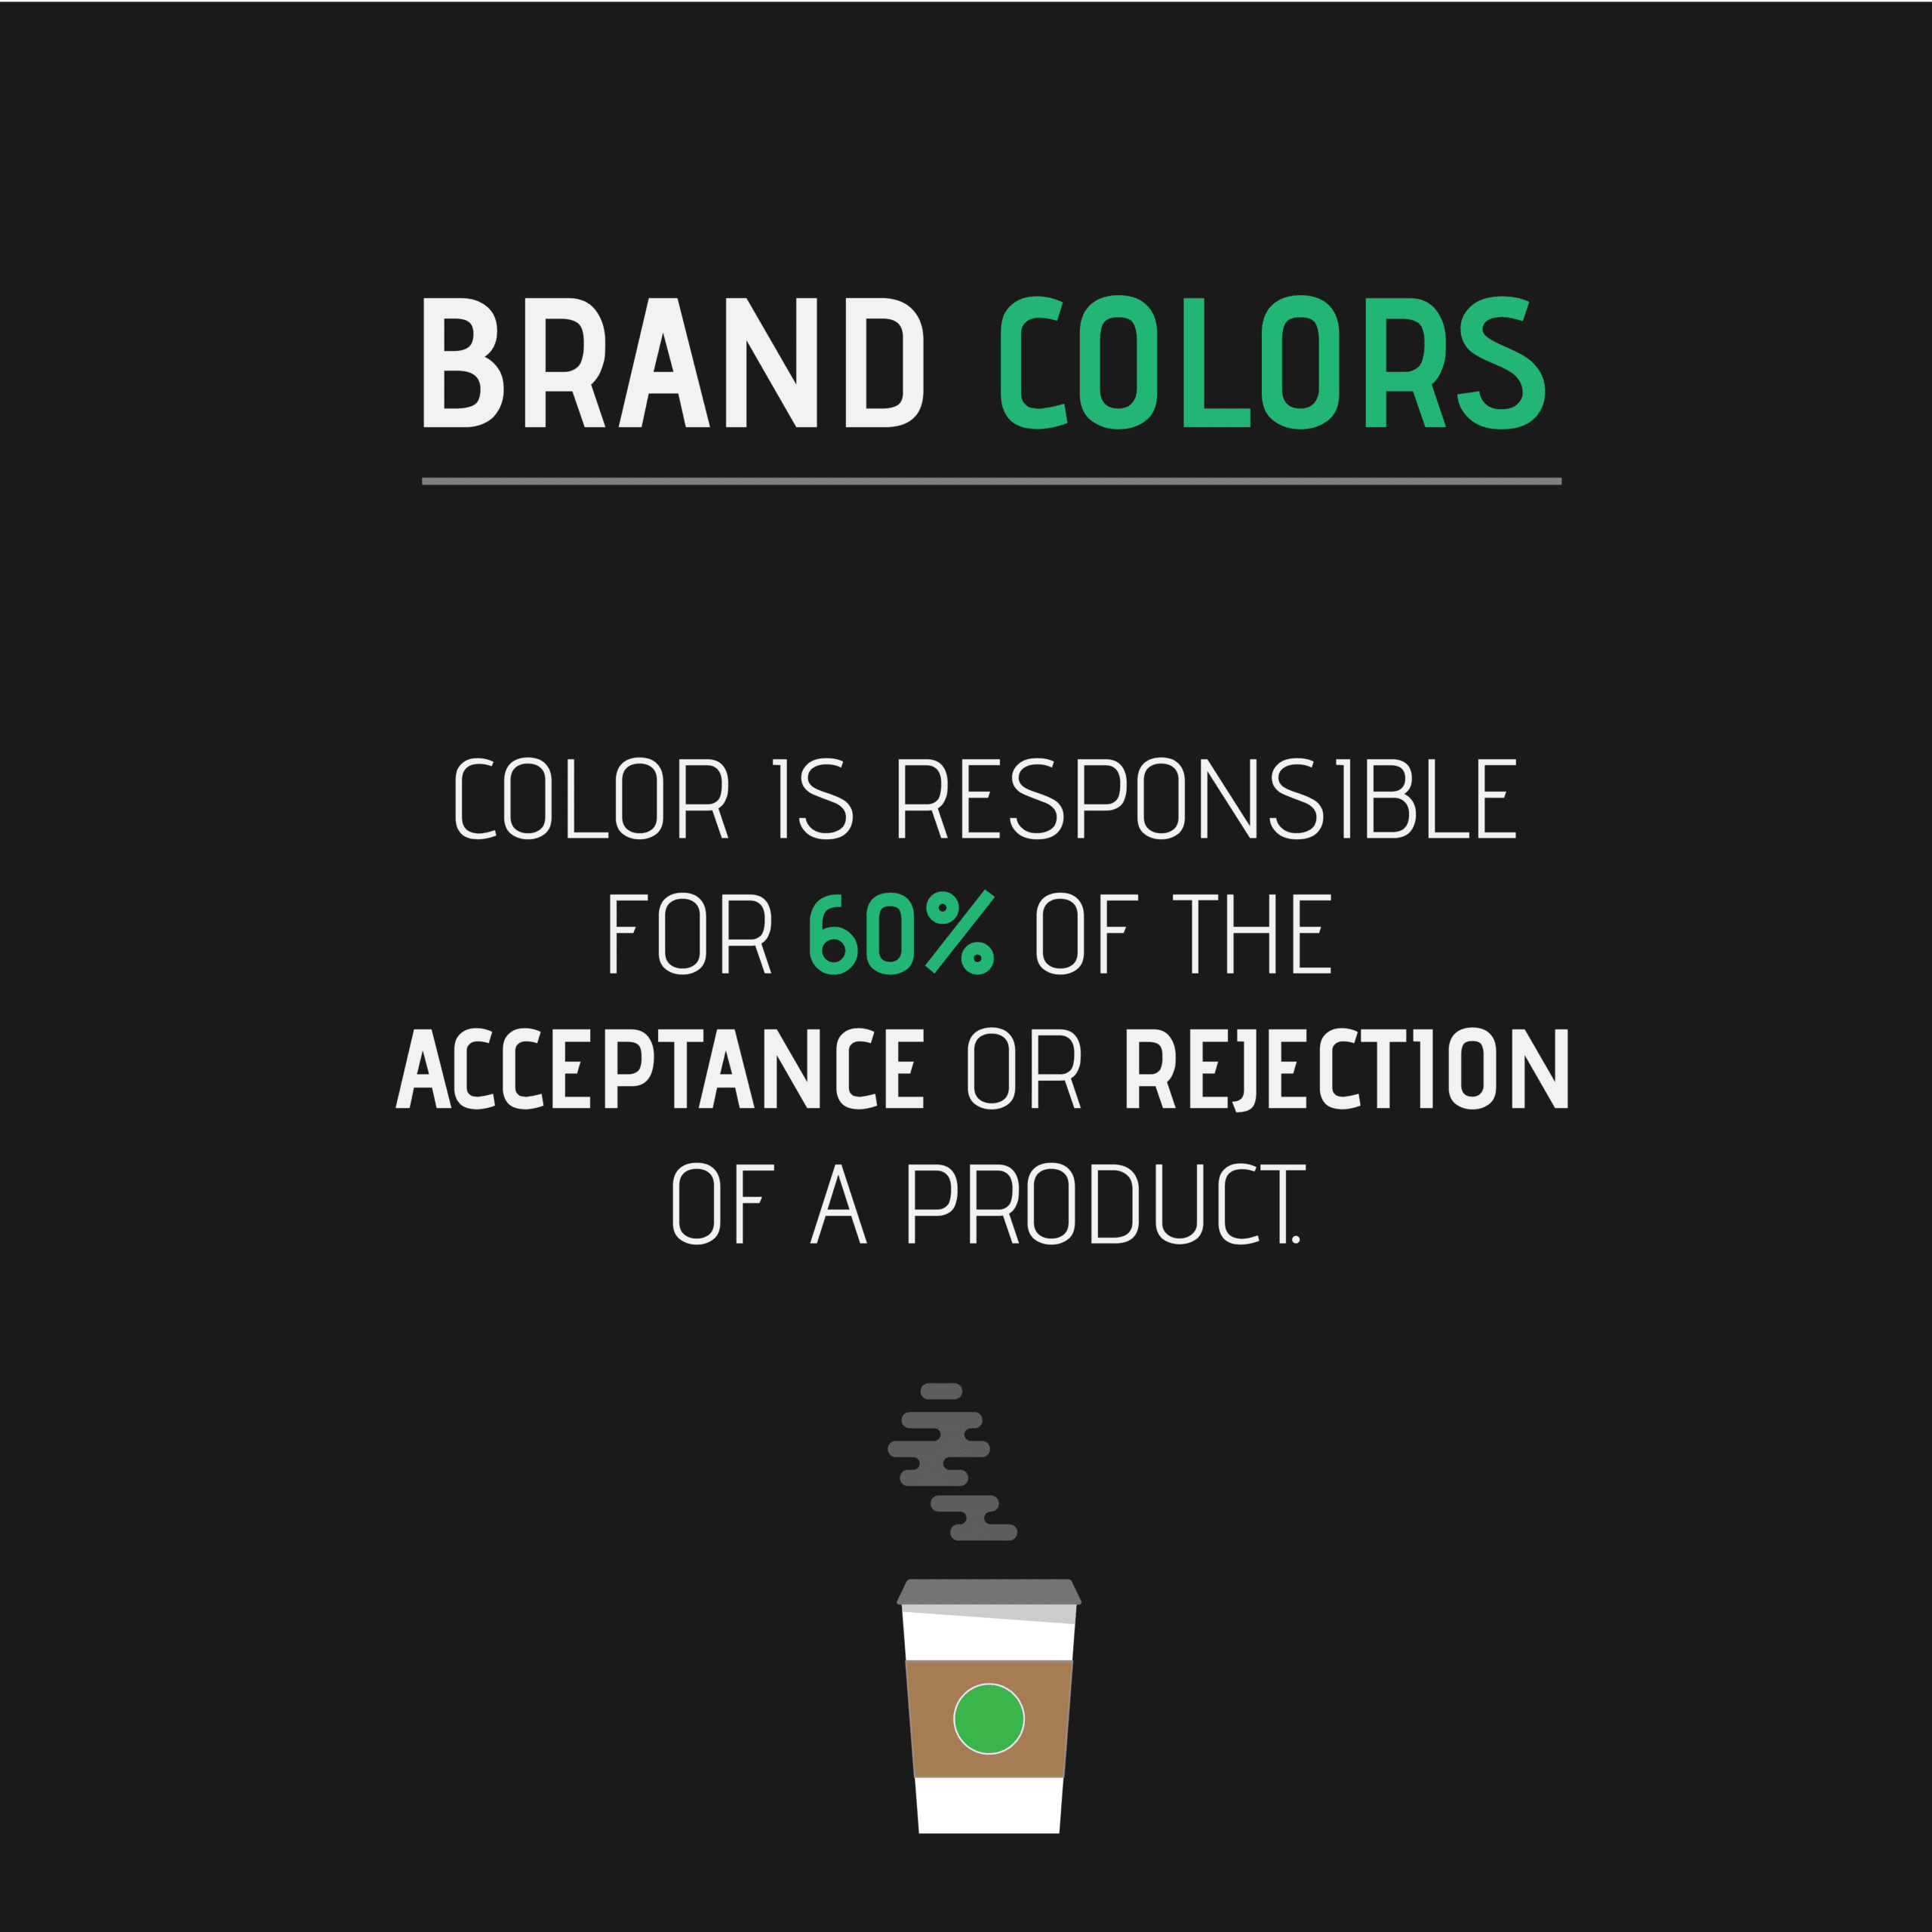 Color is responsible for 60% of the acceptance or rejection of a product. Quote.